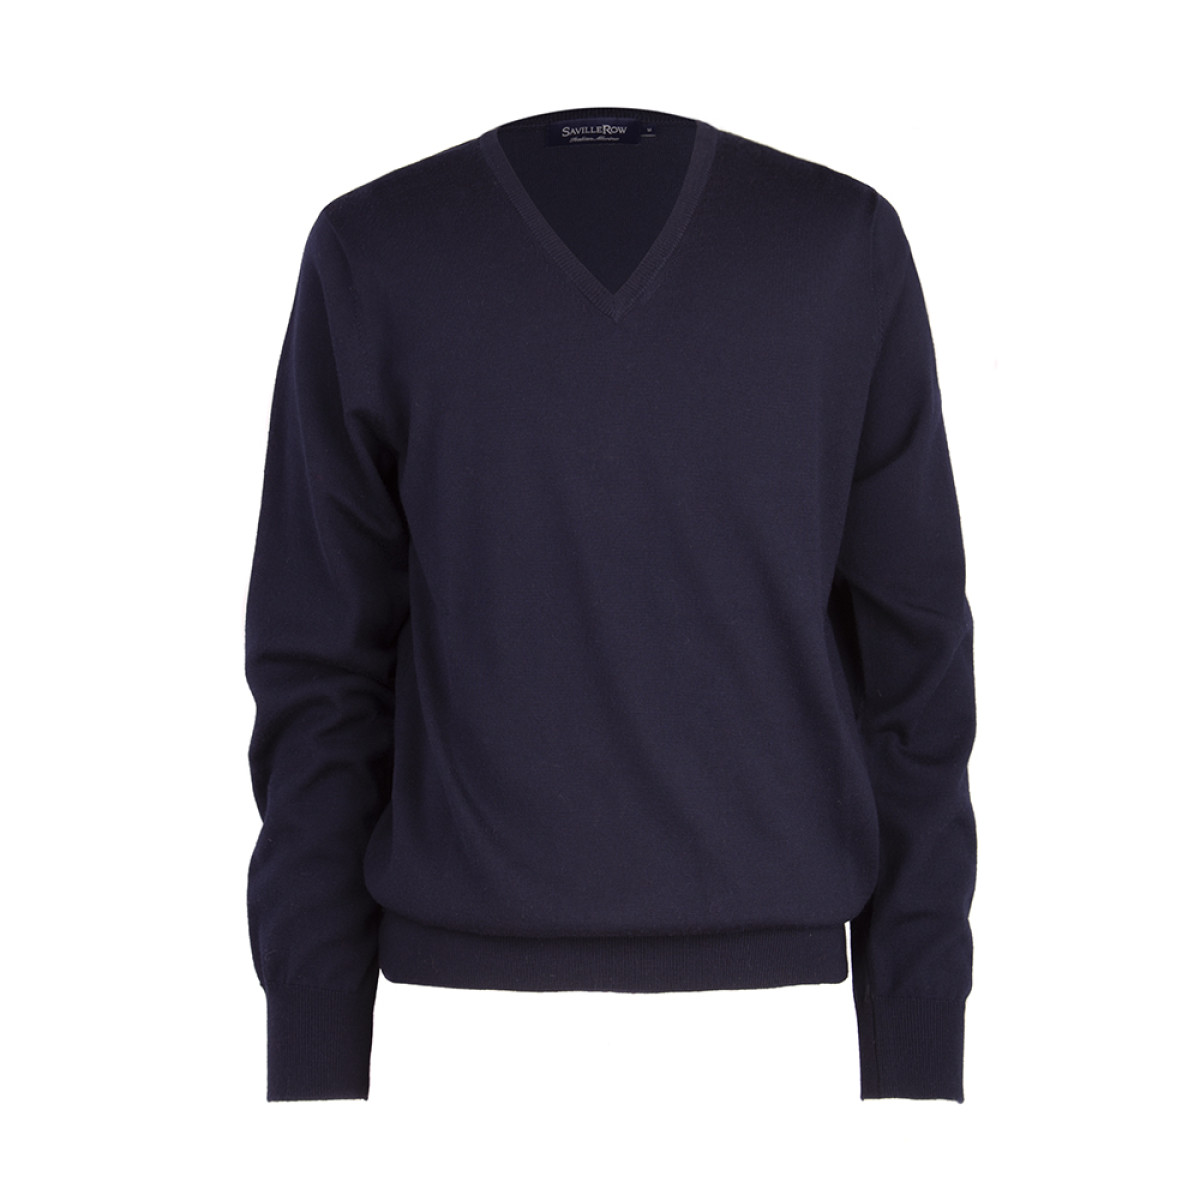 Sweater Liso Cuello V Manga Larga Merino Italiano